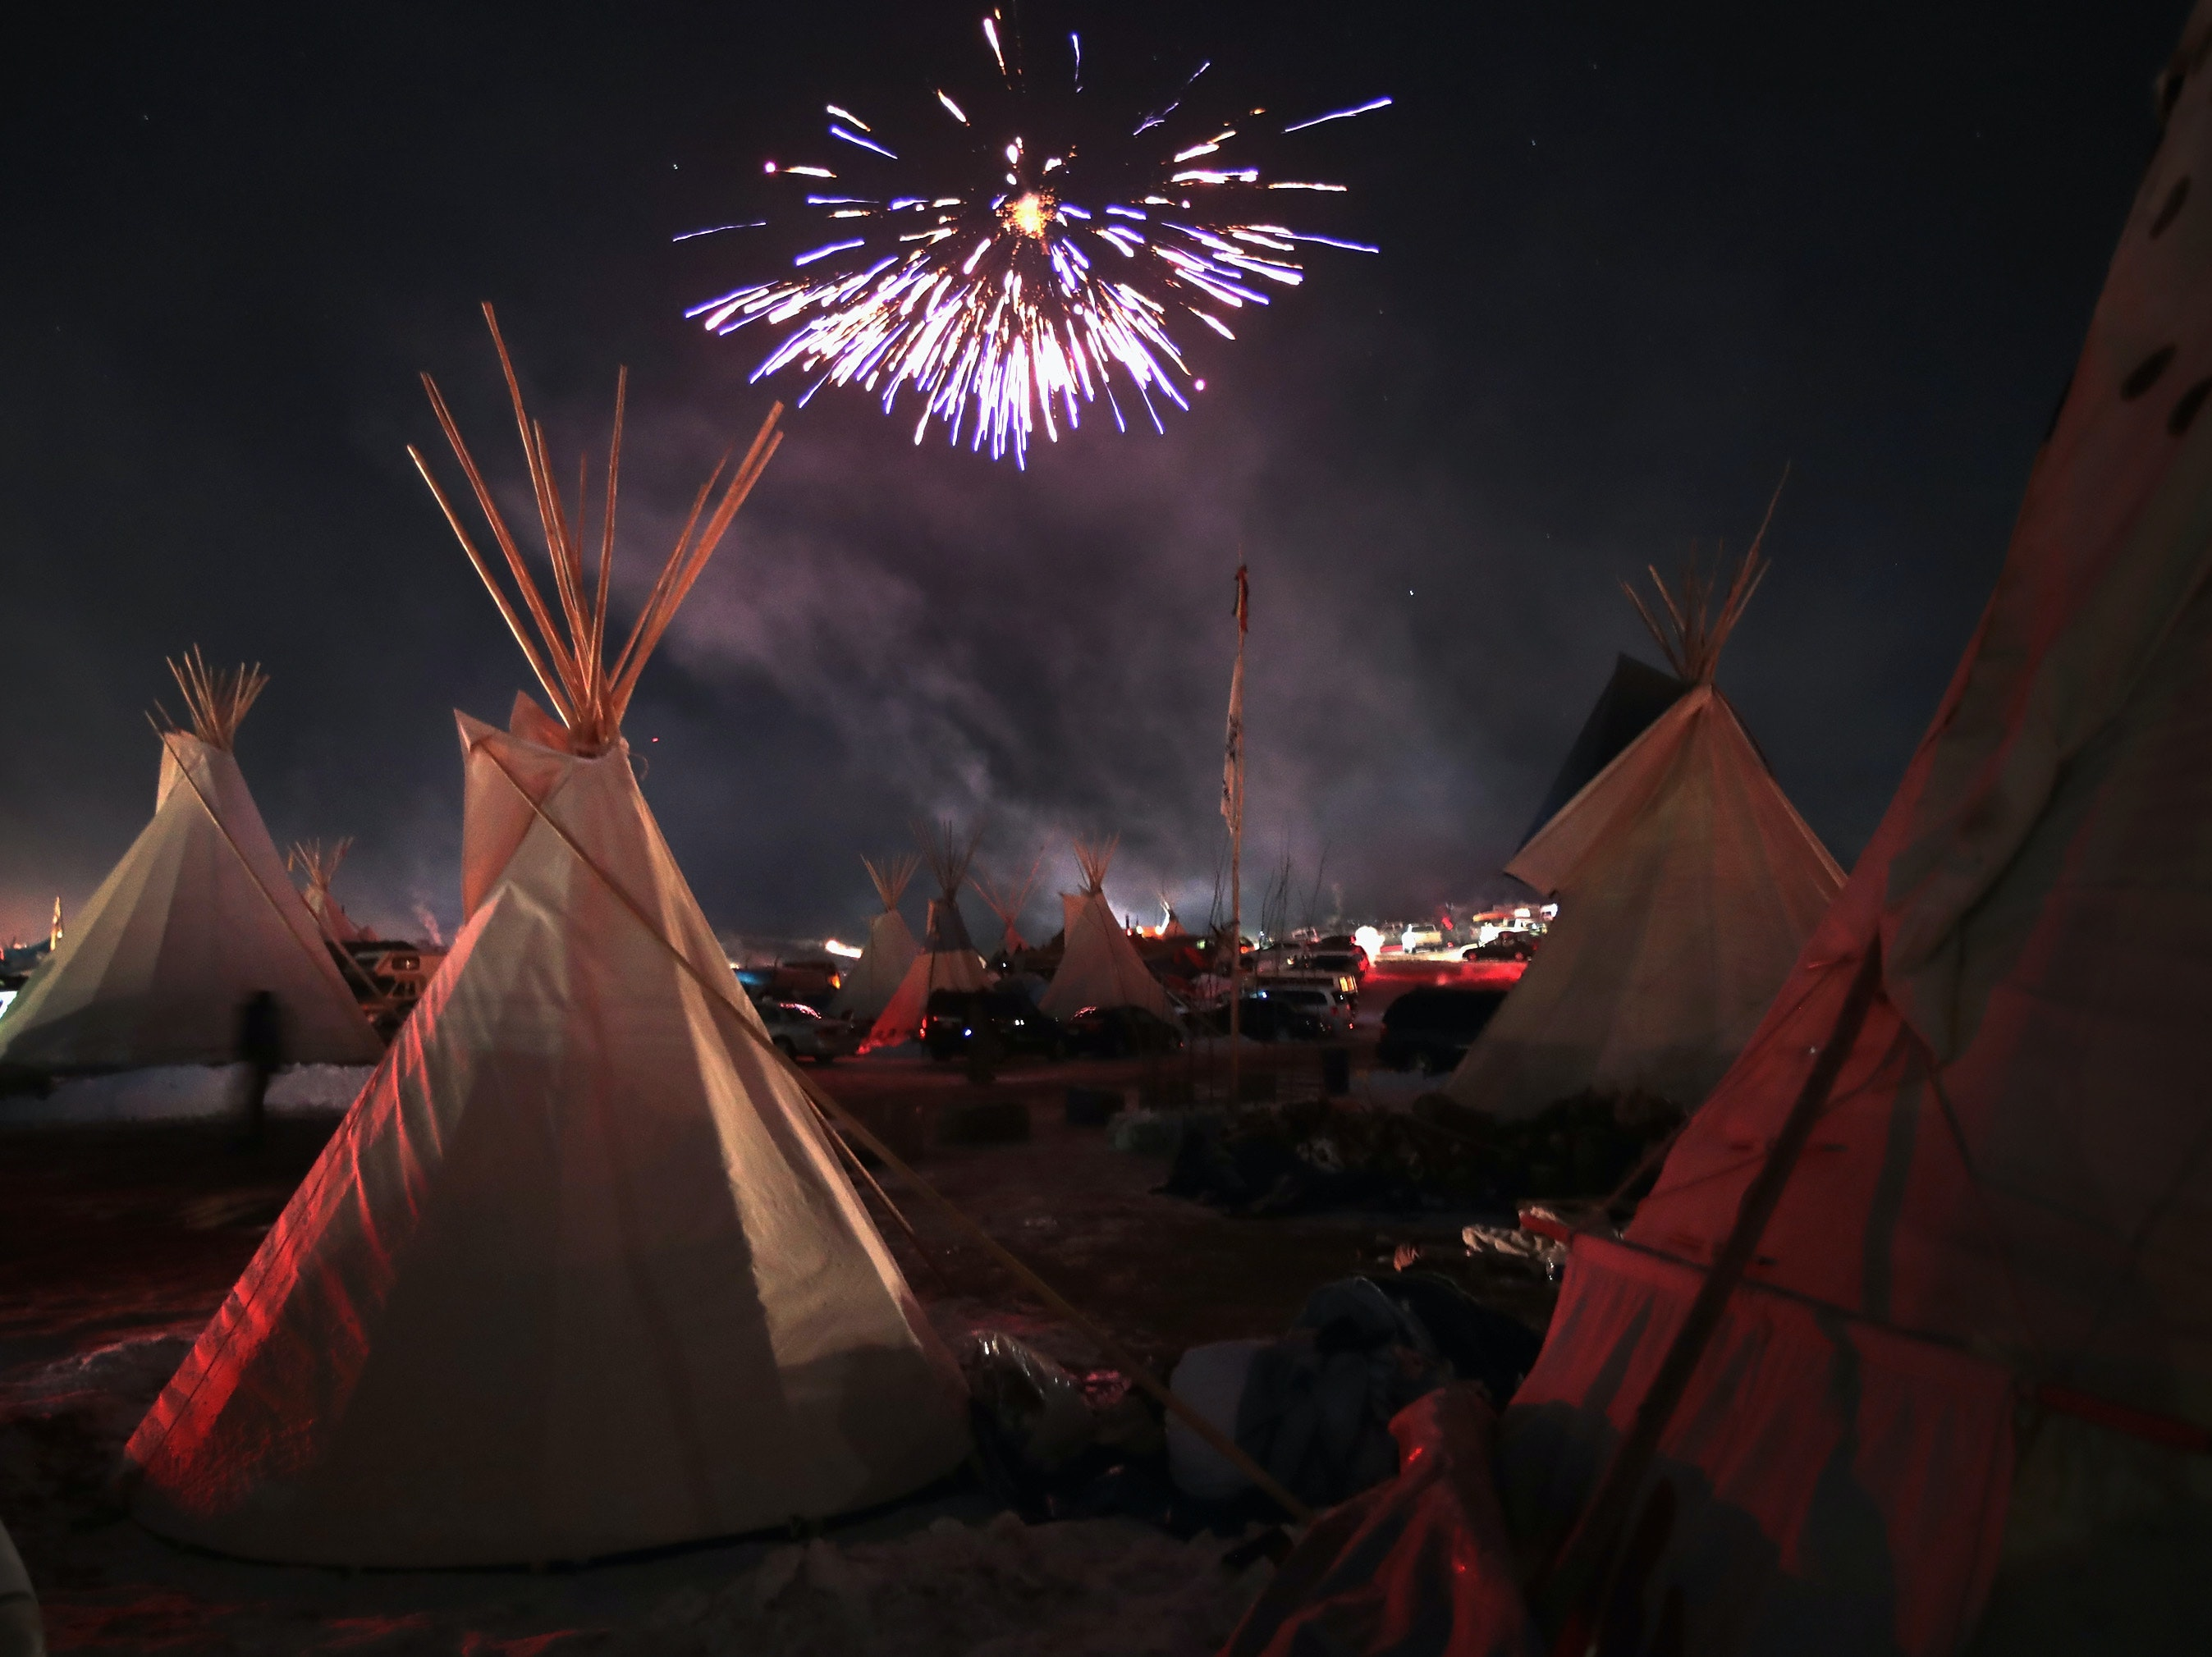 """Protesting Works"" Is the Cry After DAPL Decision in Standing Rock"